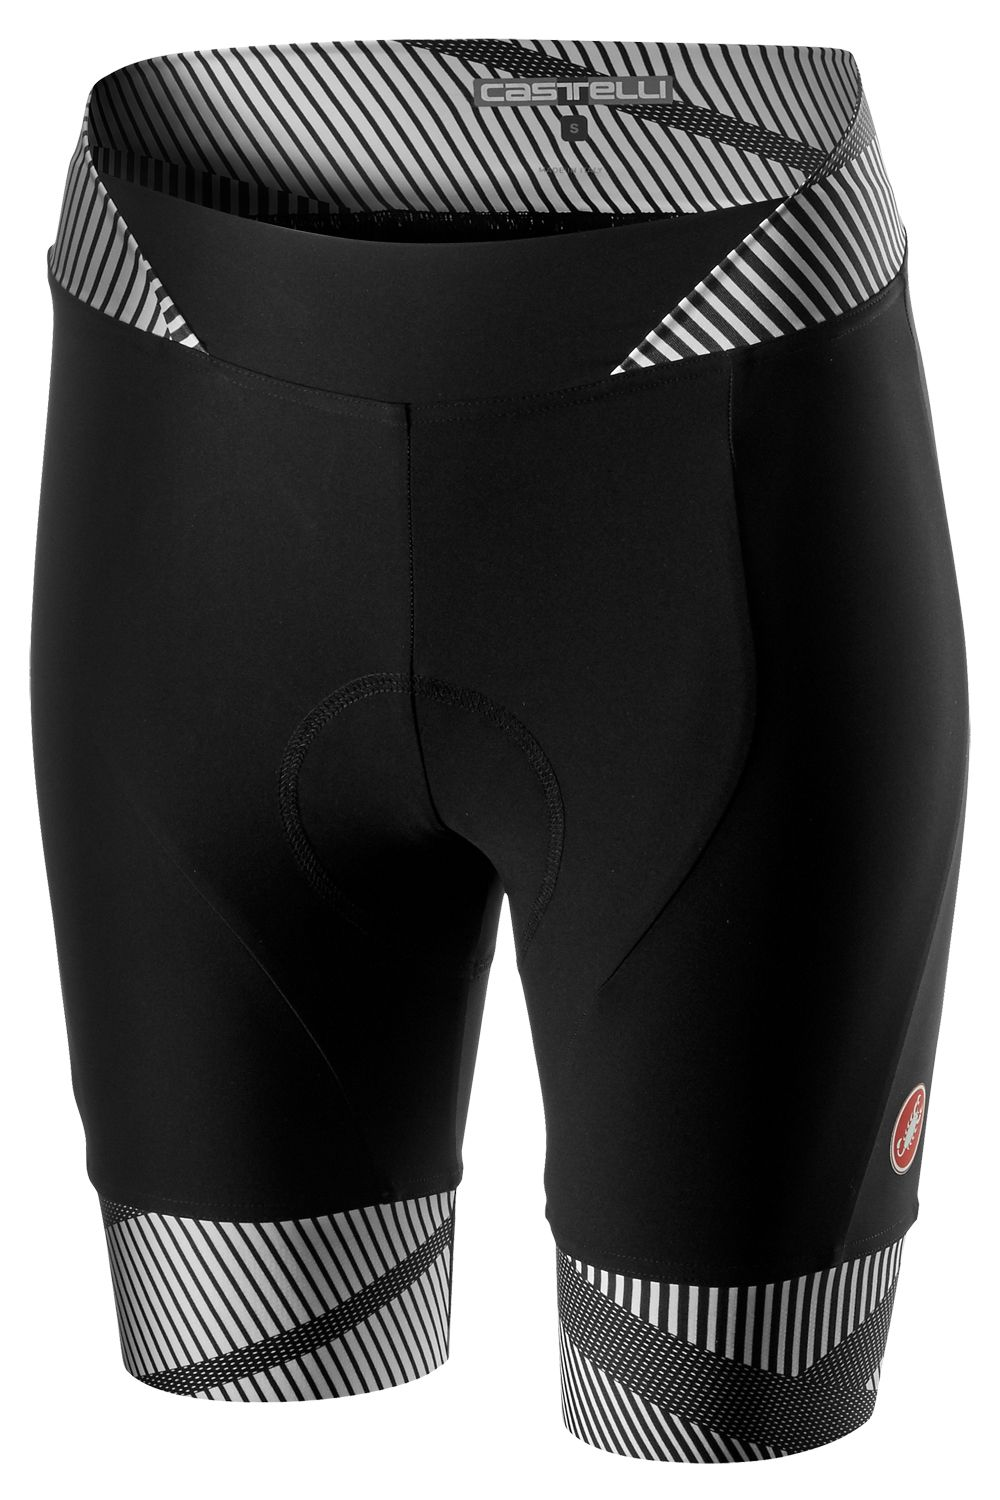 1734e5a96 Castelli MILLERIGHE womens cycling shorts black. Next